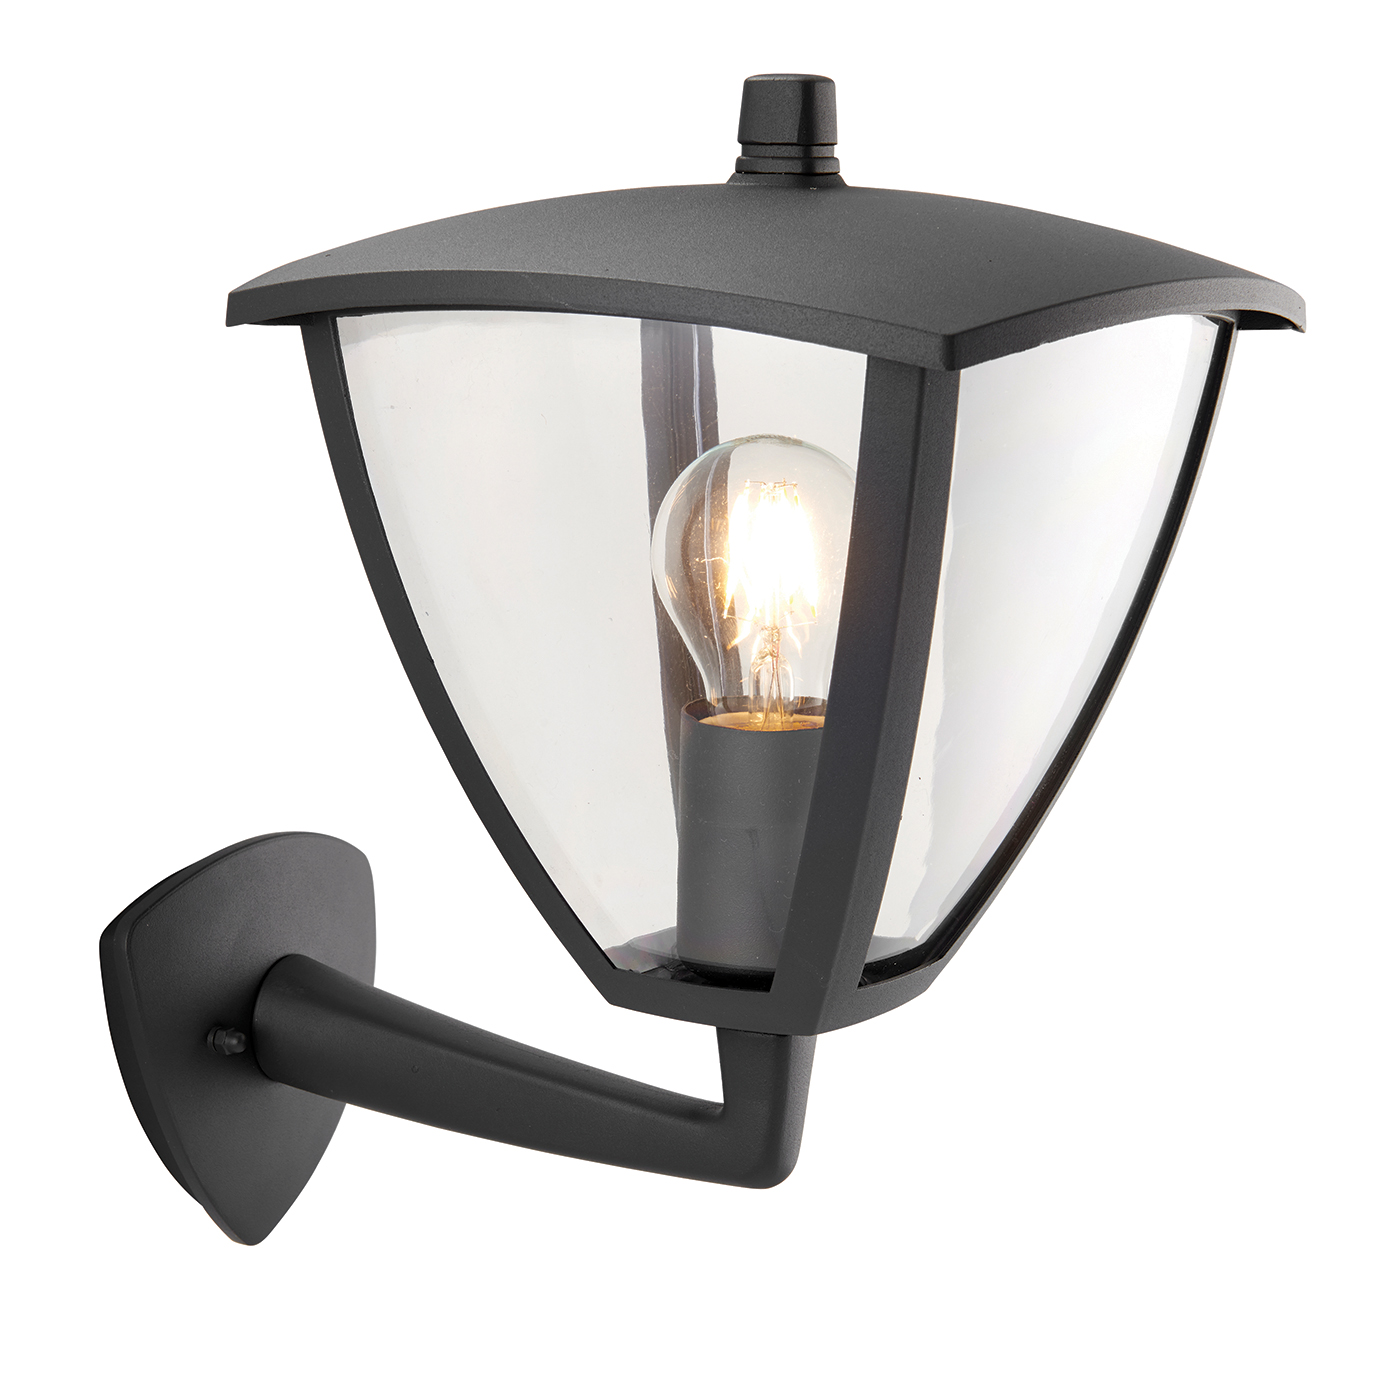 Endon Seraph Outdoor Wall Light Ip44 40w Textured Grey Paint Amp Clear Pc Liminaires